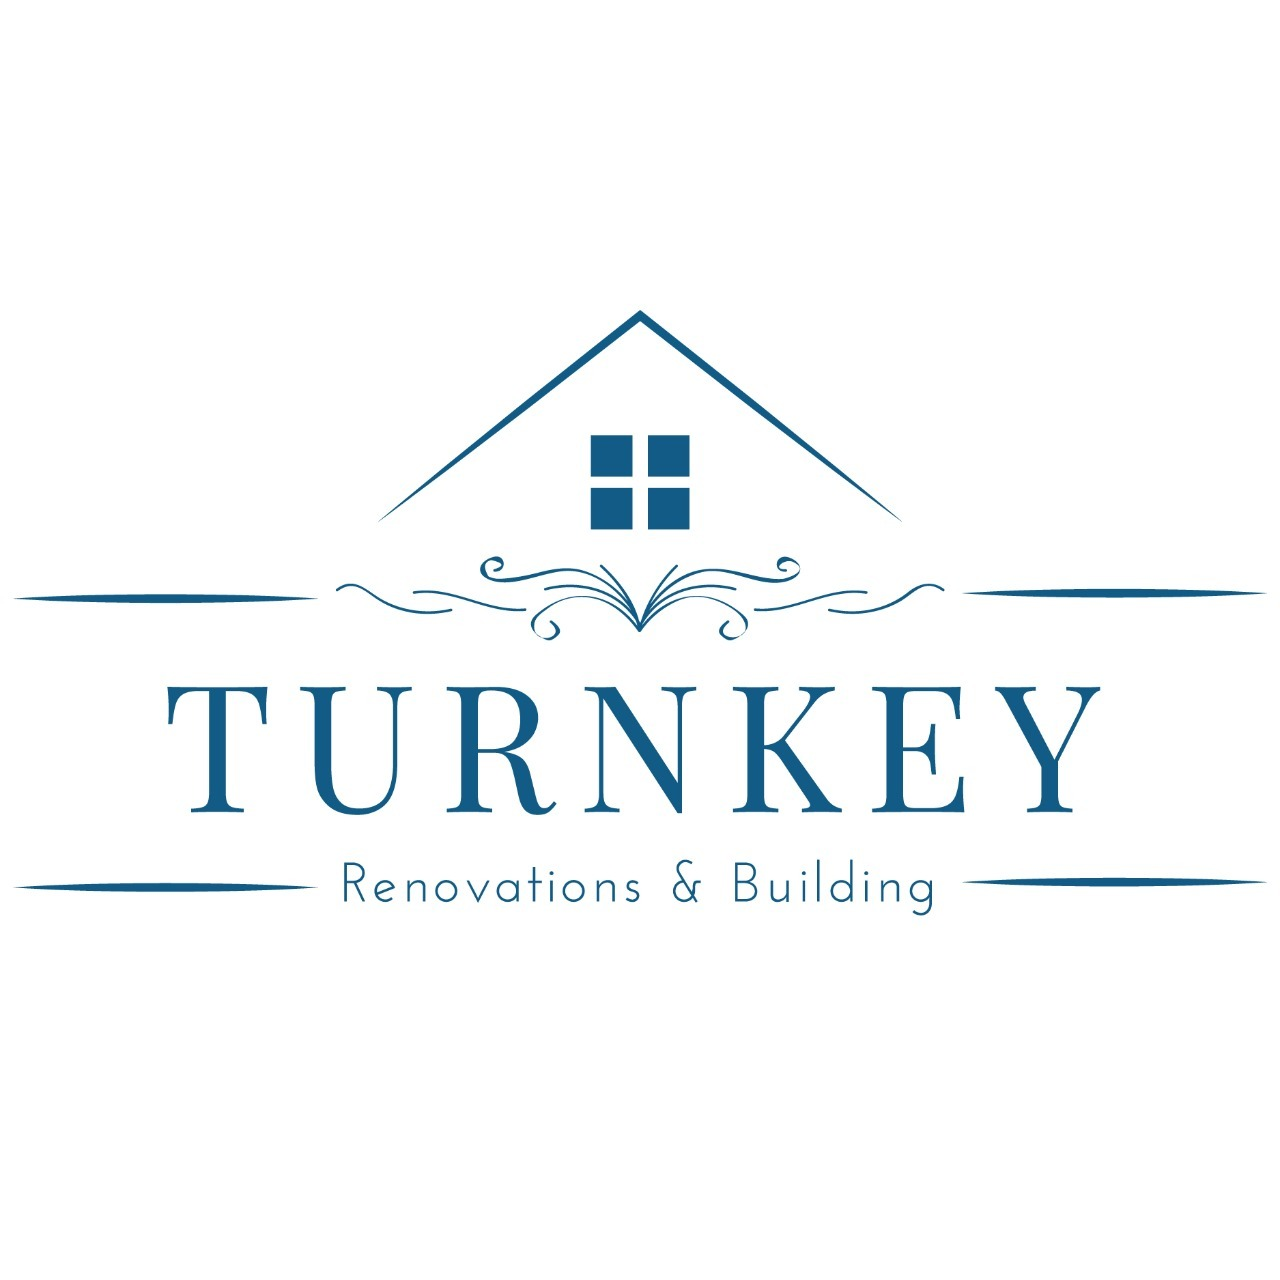 Turnkey Renovations